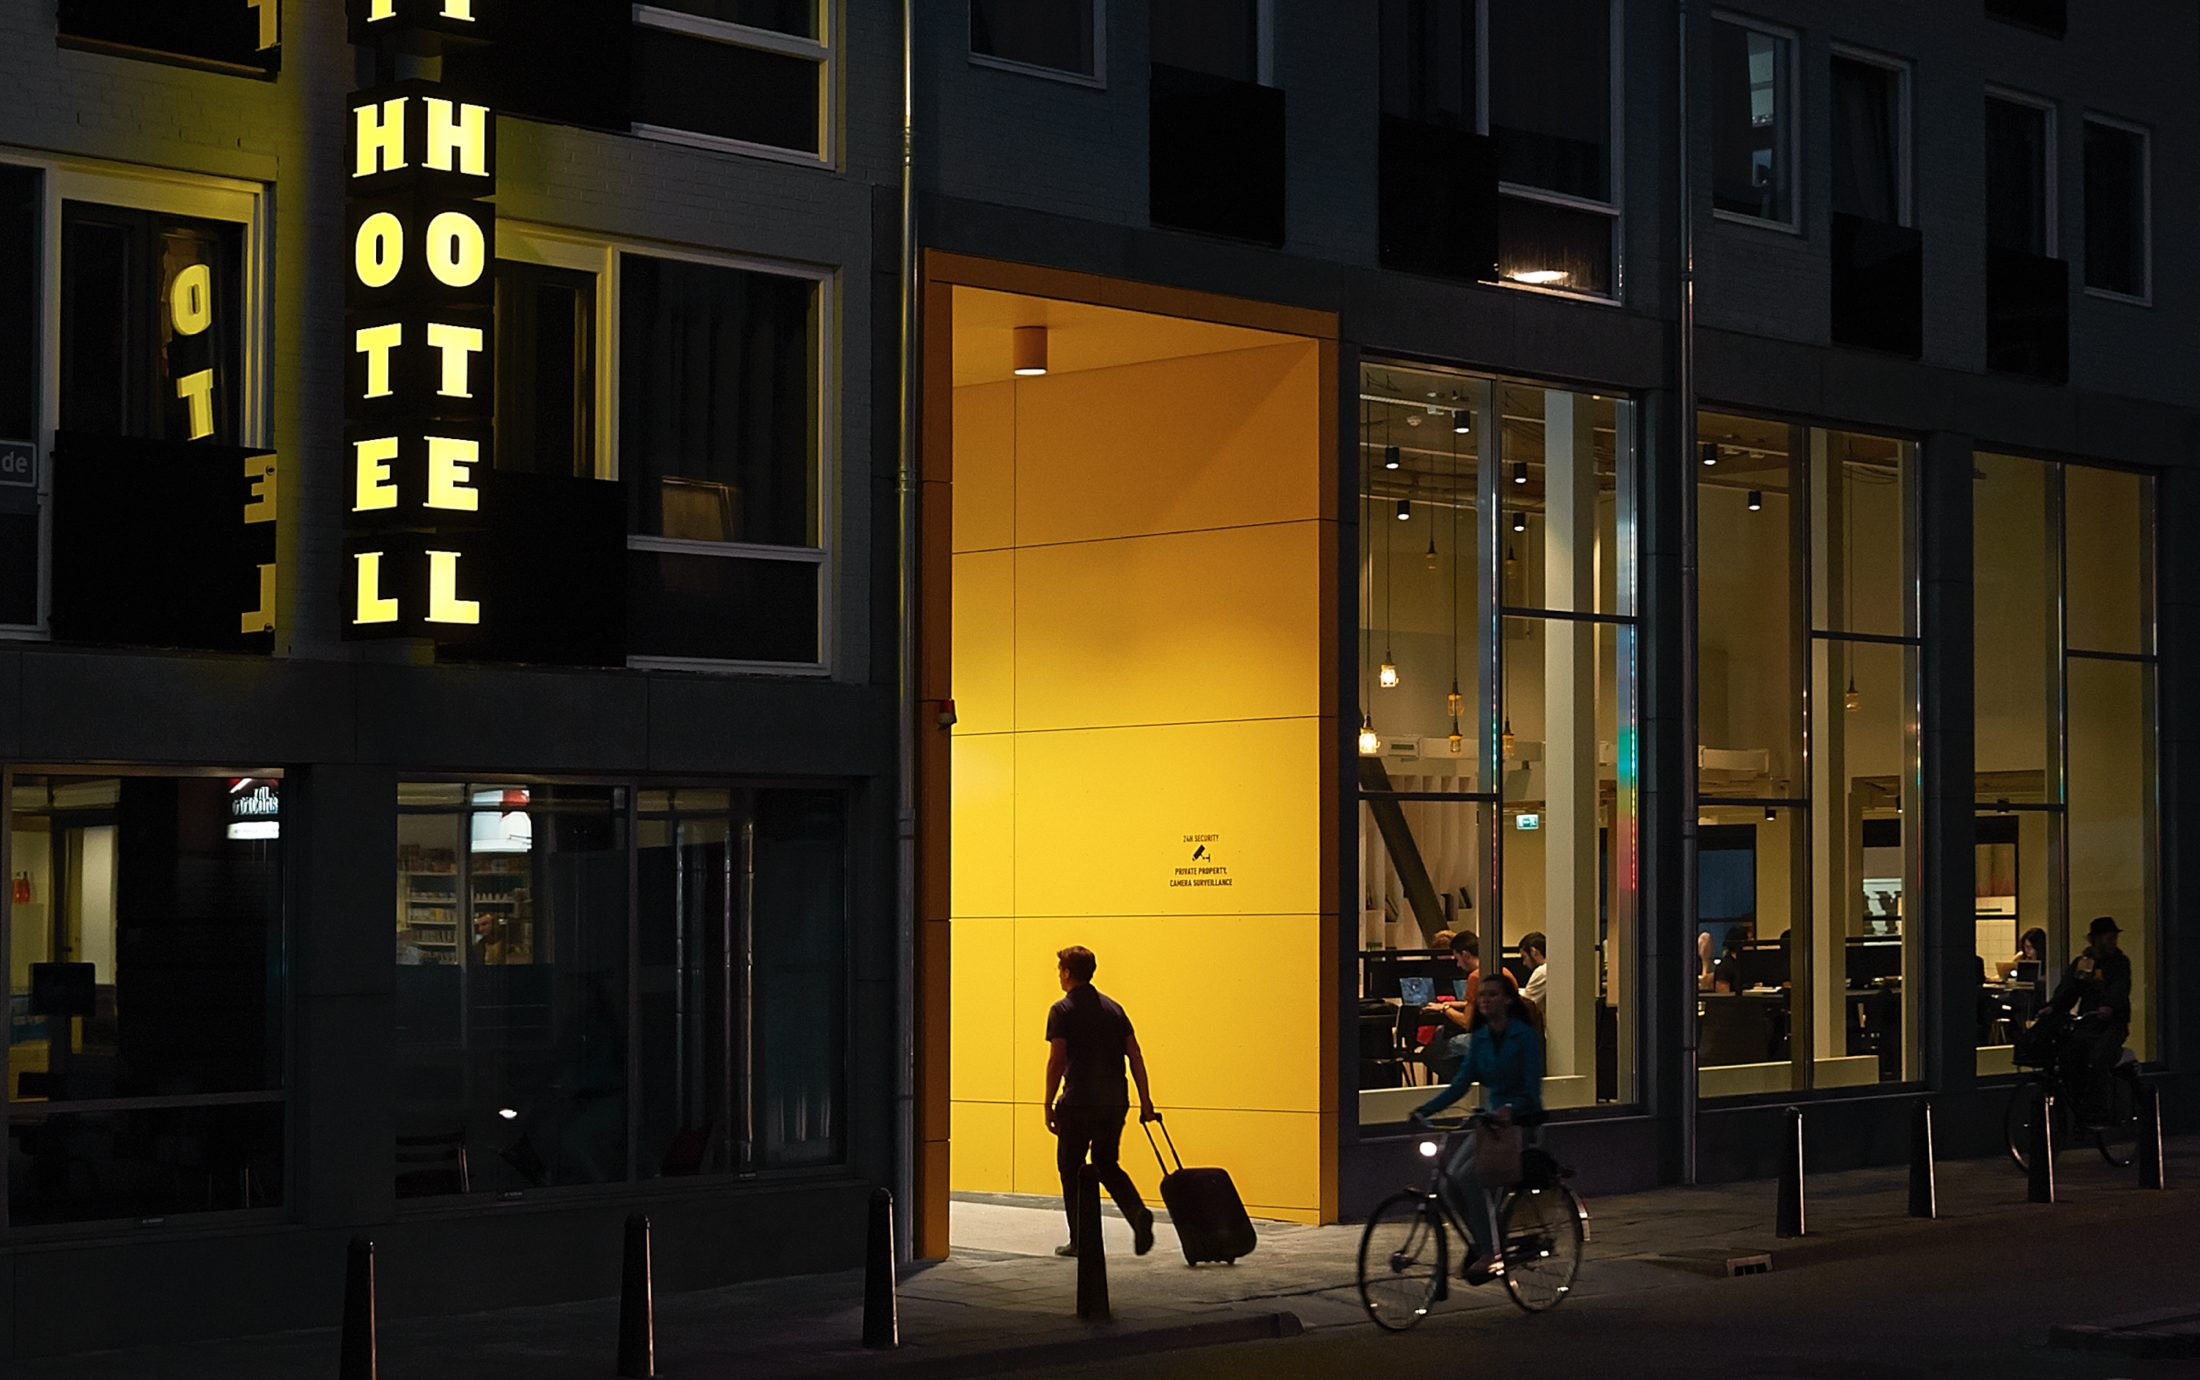 The Student Hotel Brand